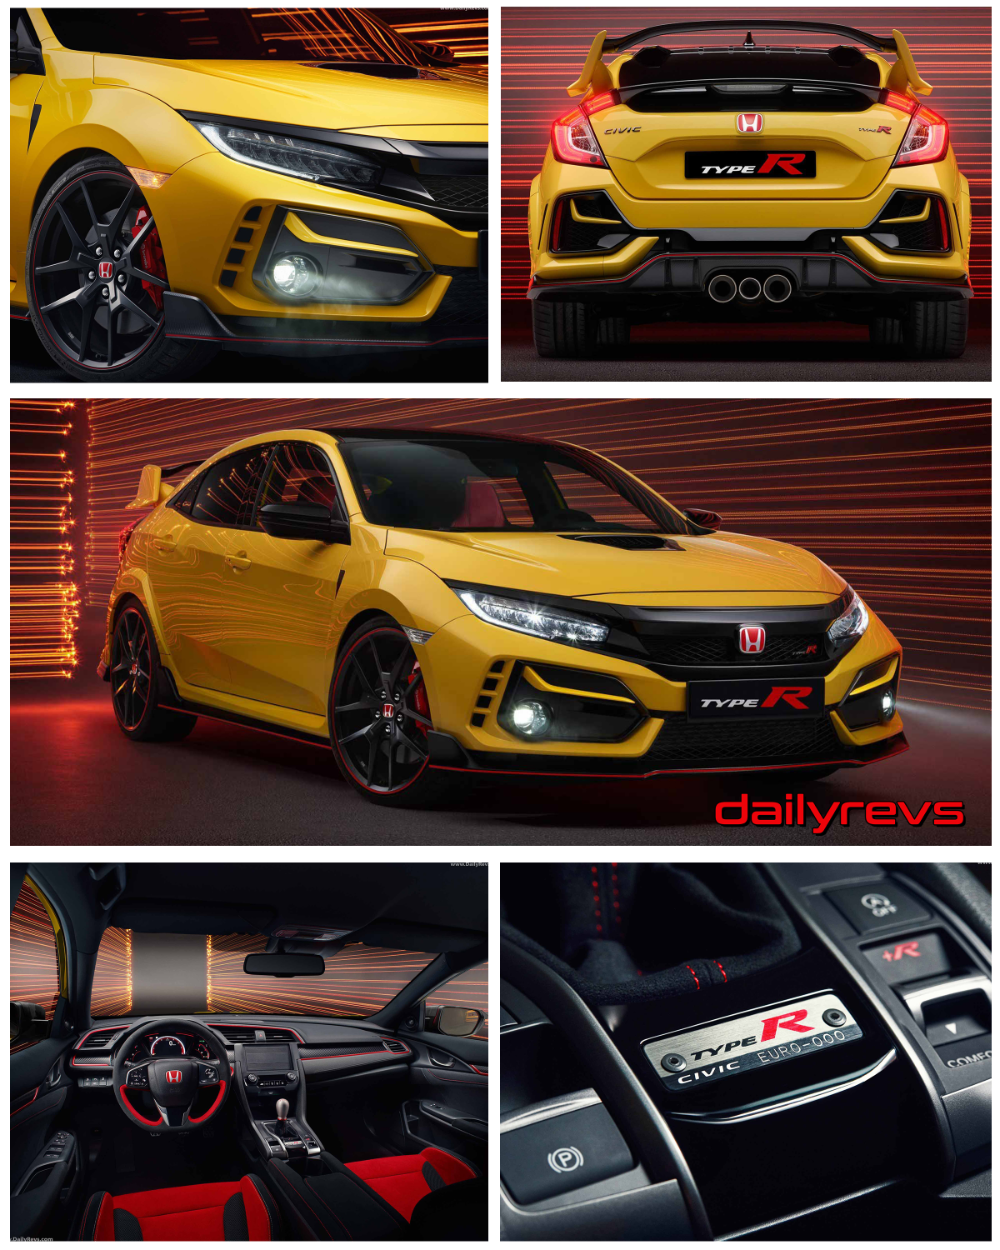 2021 Honda Civic Type R Limited Edition Hd Pictures Videos Specs Information Dailyrevs Honda Civic Type R Honda Civic Honda Civic Vtec